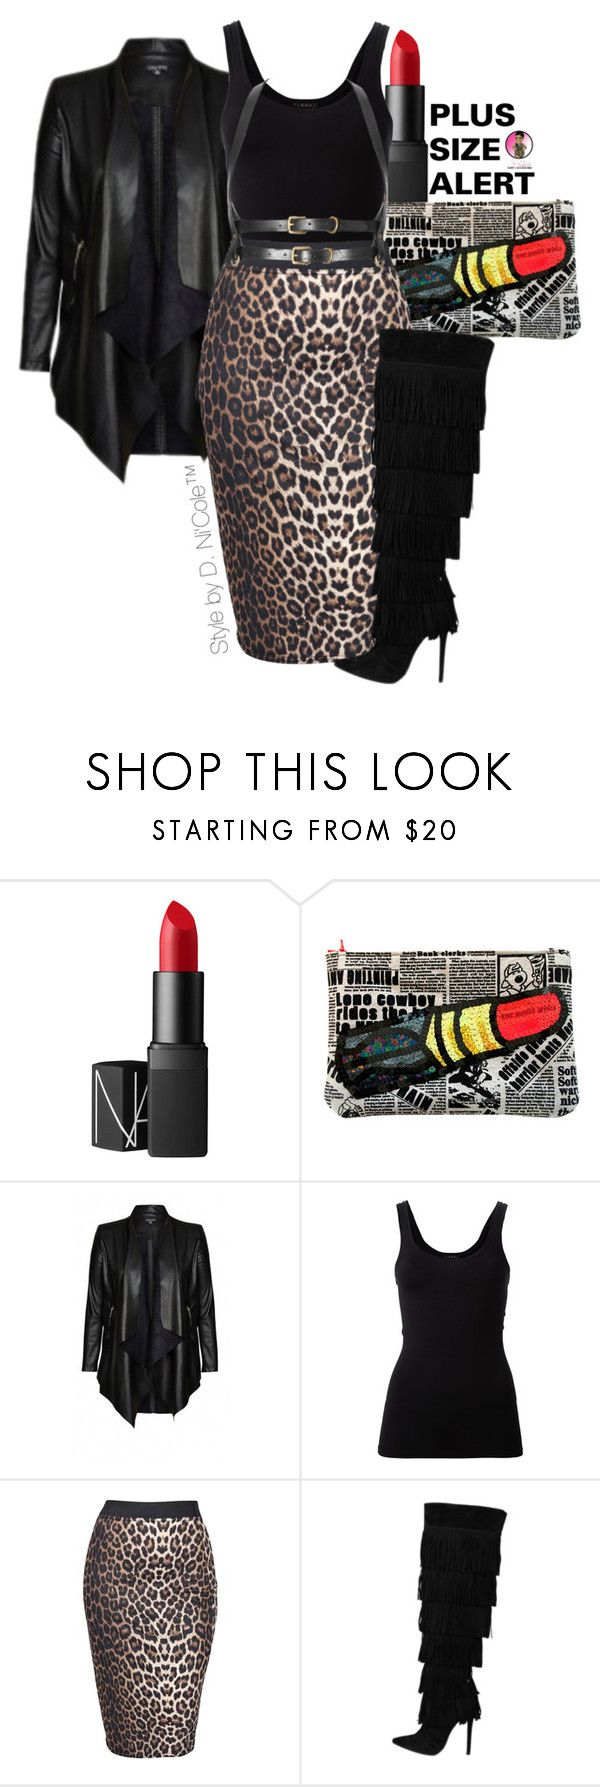 """""""Untitled #2796"""" by stylebydnicole ❤ liked on Polyvore featuring NARS Cosmetics, City Chic, Theory and Boohoo"""